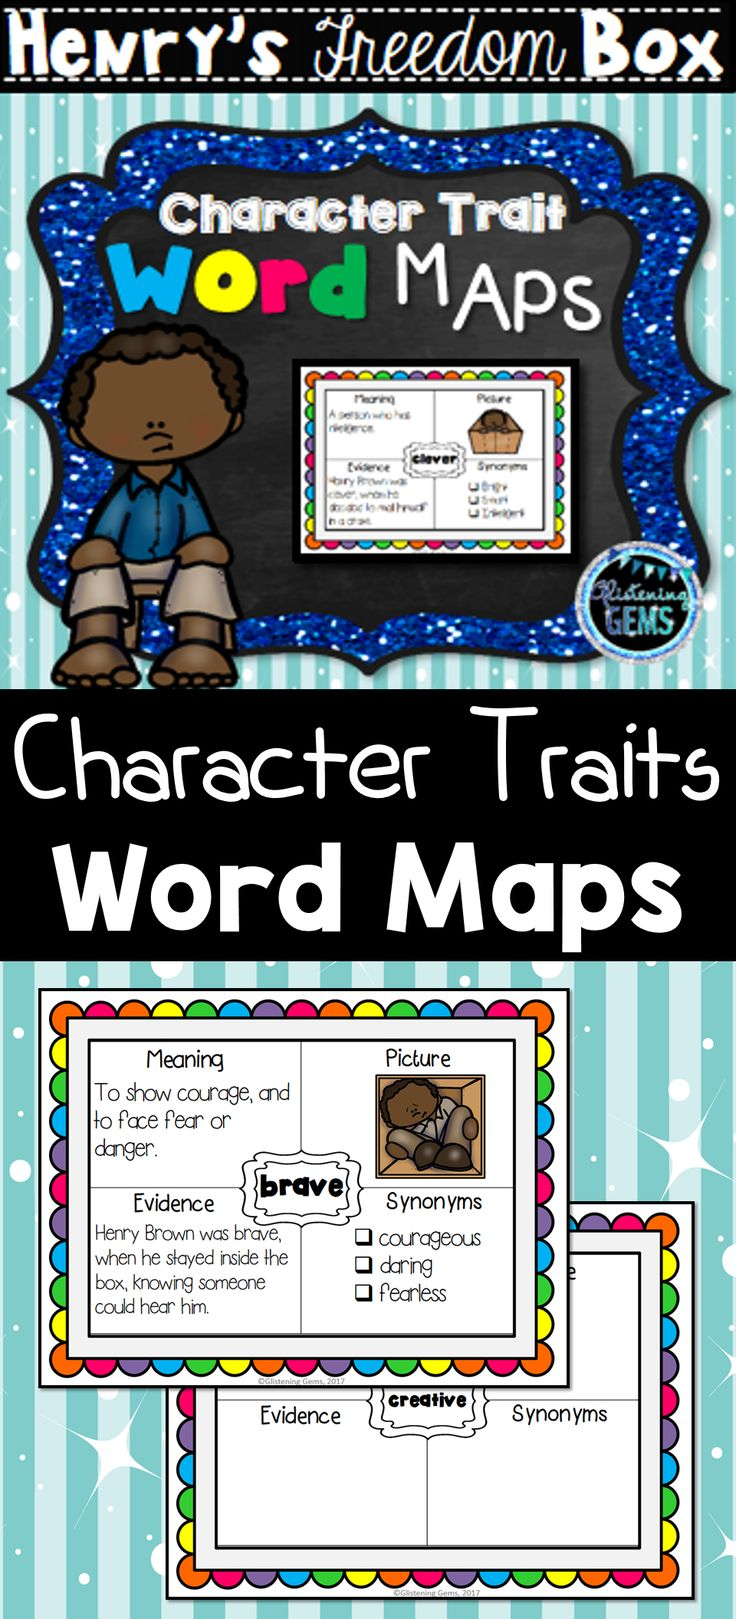 Henry's Freedom Box - Character Trait Word Maps/Graphic Organizers. Examples included.